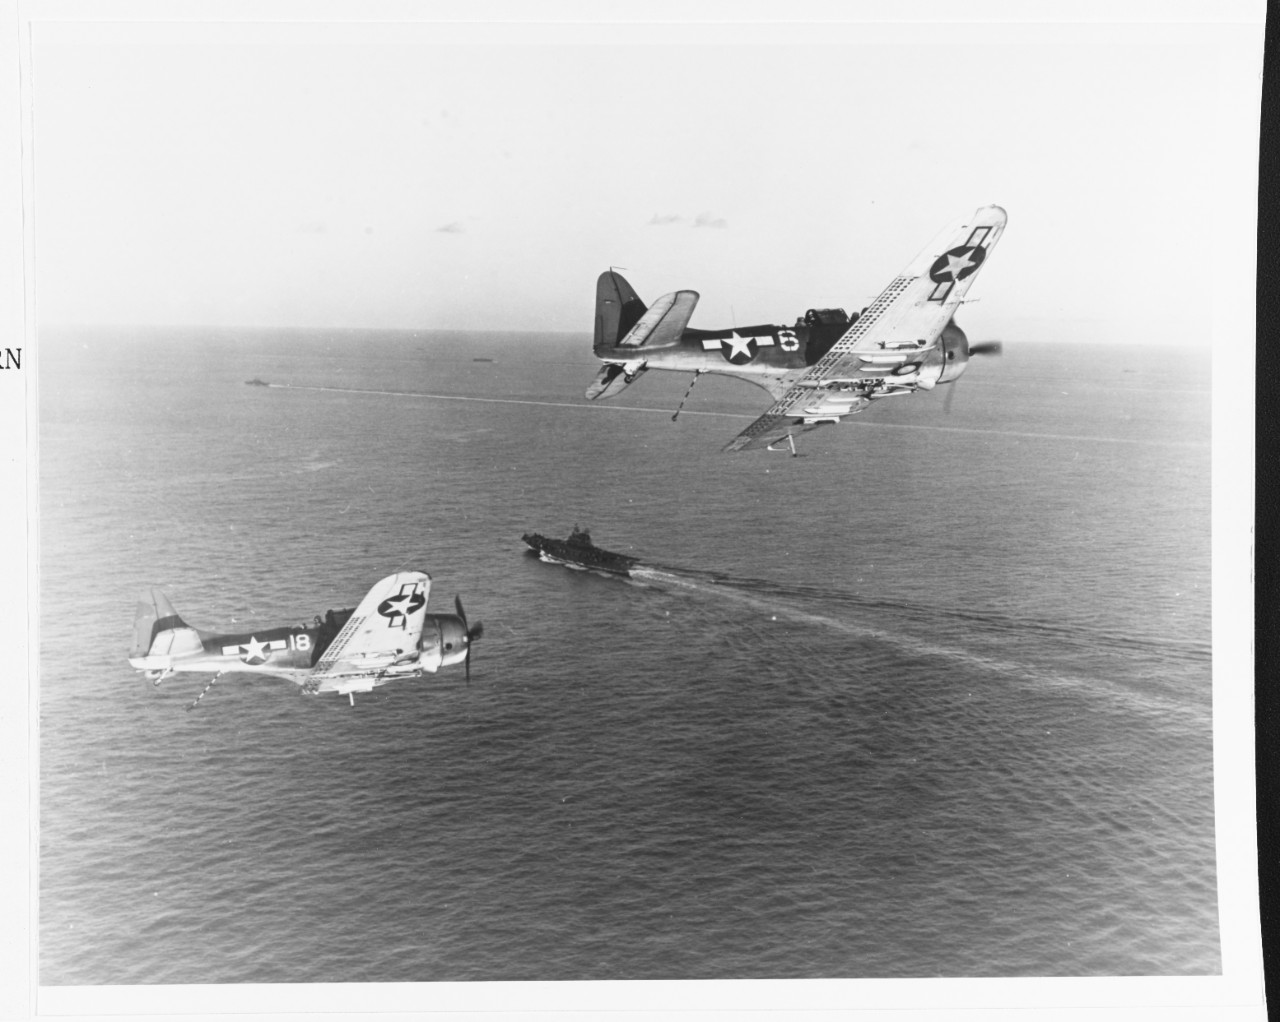 A pair of SBD-5s of VB-20 lower their tail hooks and turn into the landing pattern while returning to the ship after bombing the Japanese in Palau, March 1944. (U.S. Navy Photograph 80-G-251061, National Archives and Records Administration, Still Pictures Branch, College Park, Md.)